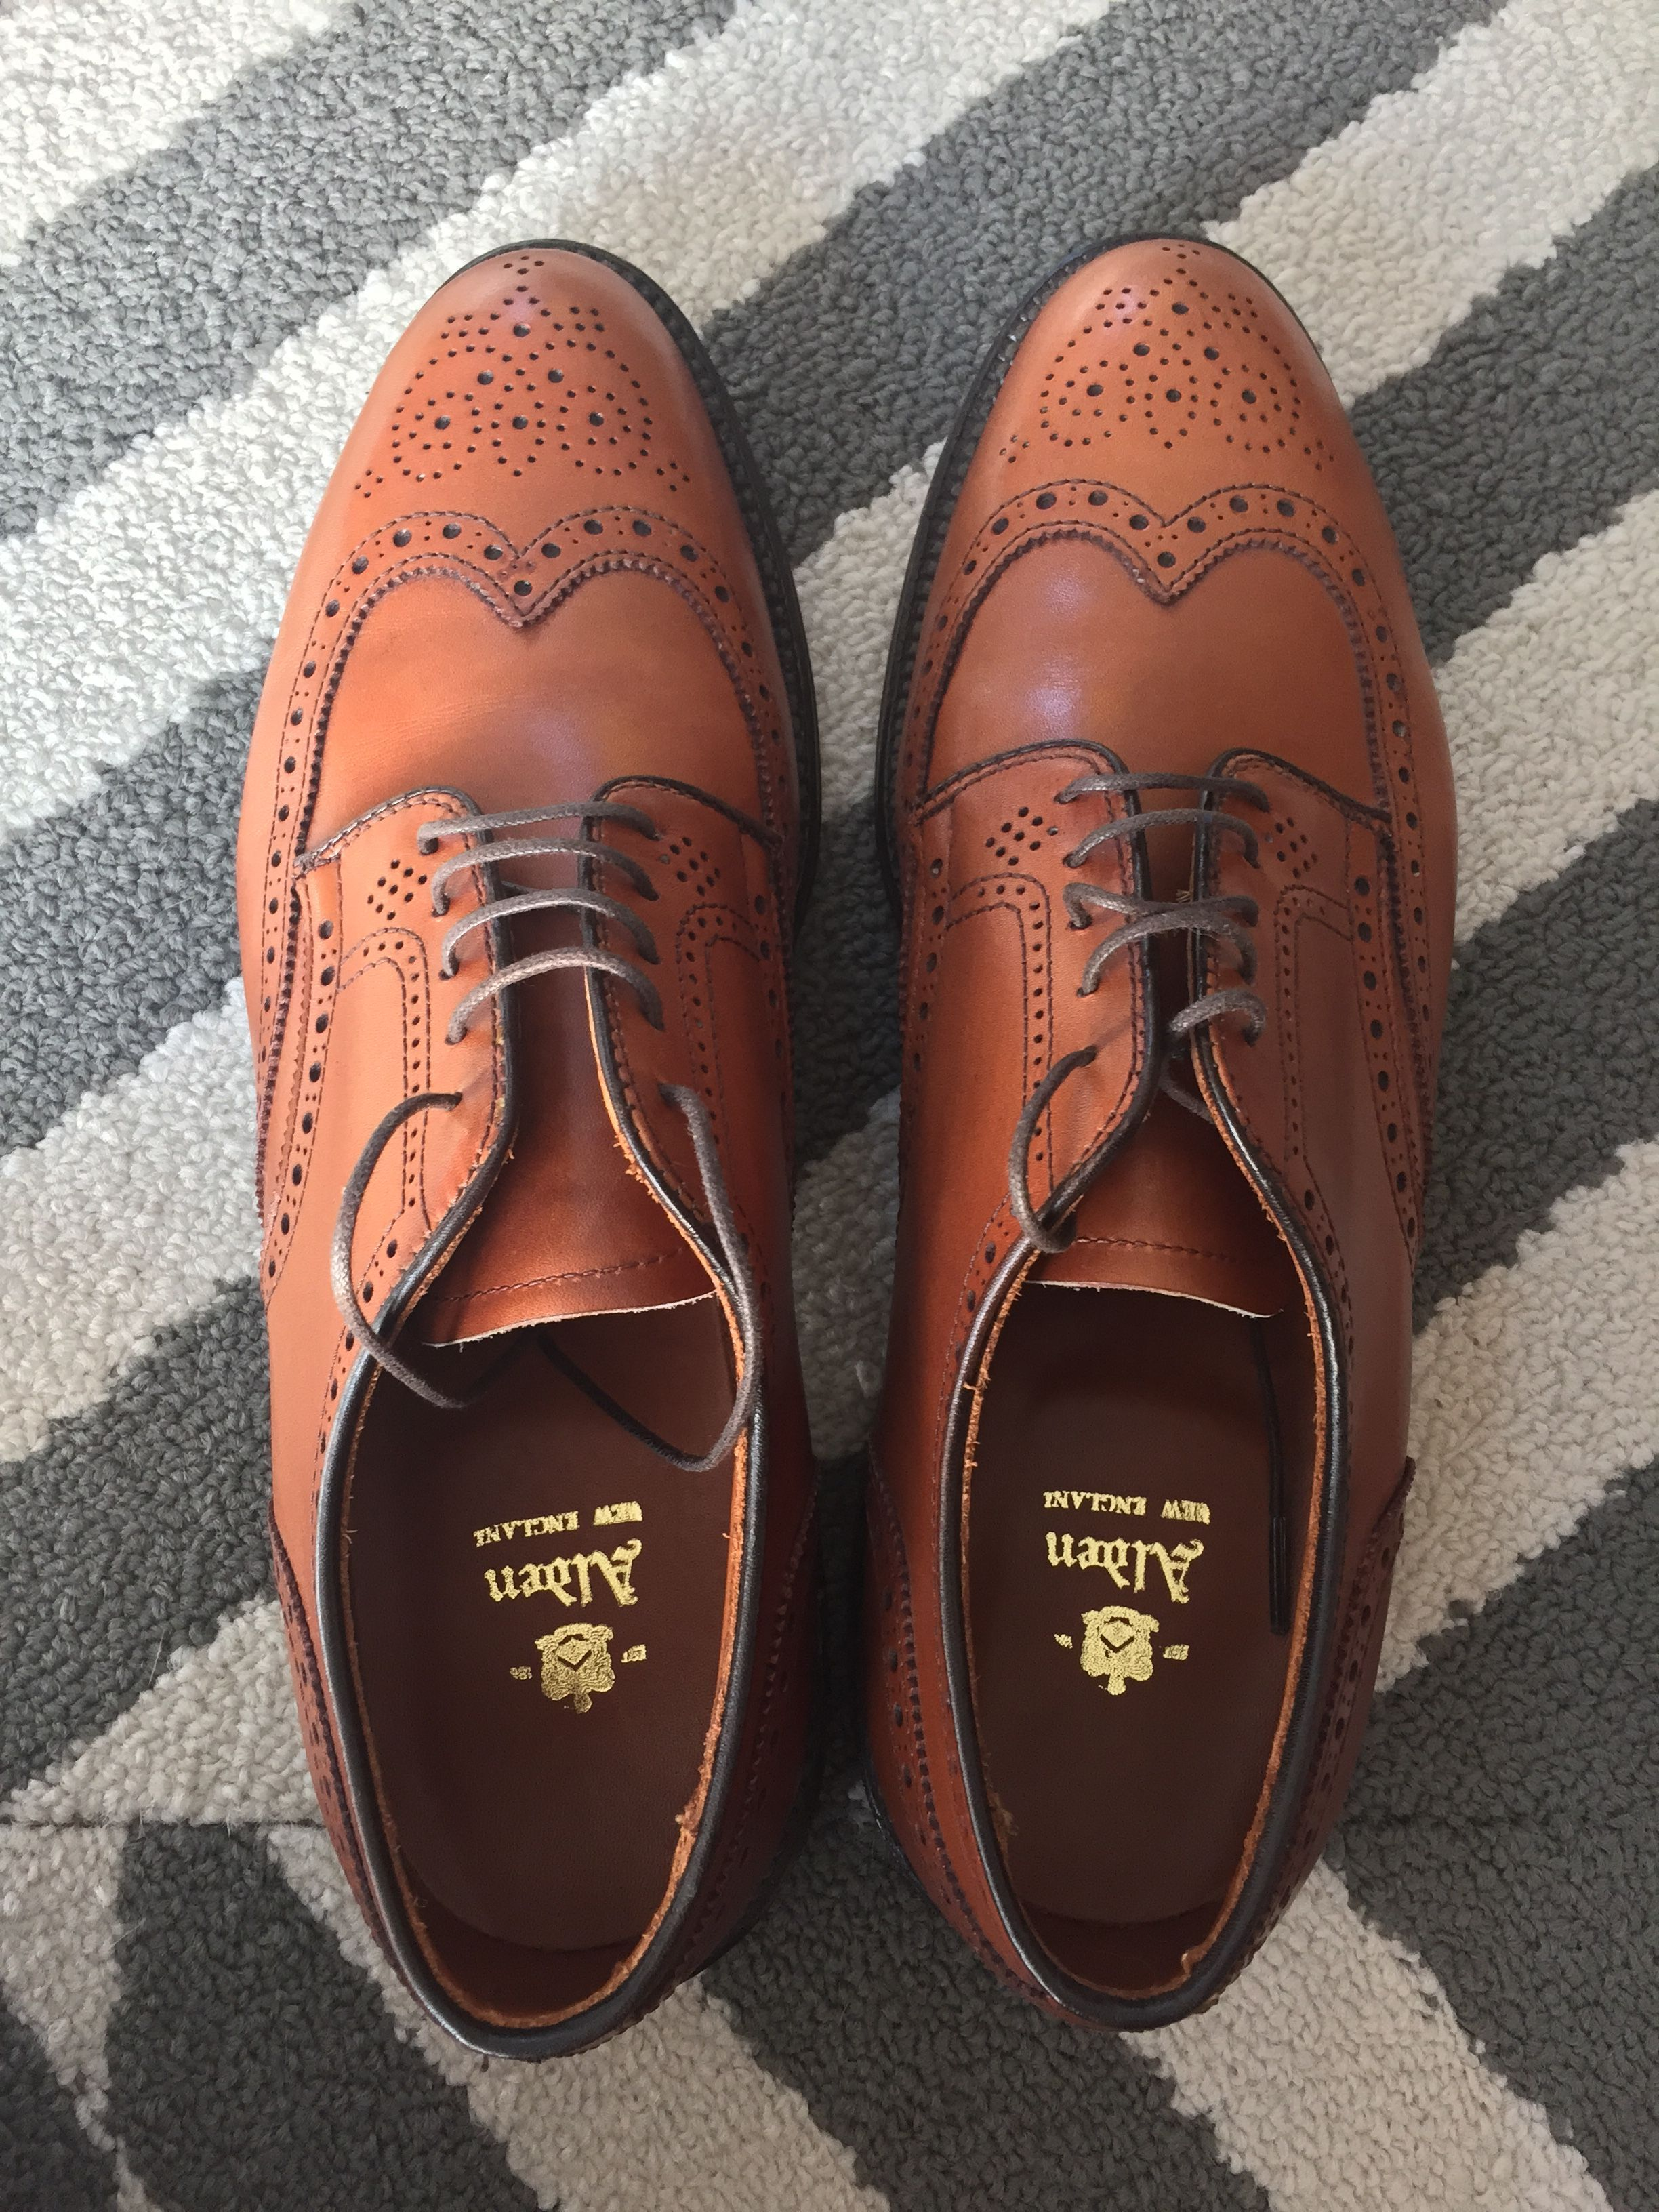 Where To Buy Alden Shoes In Toronto